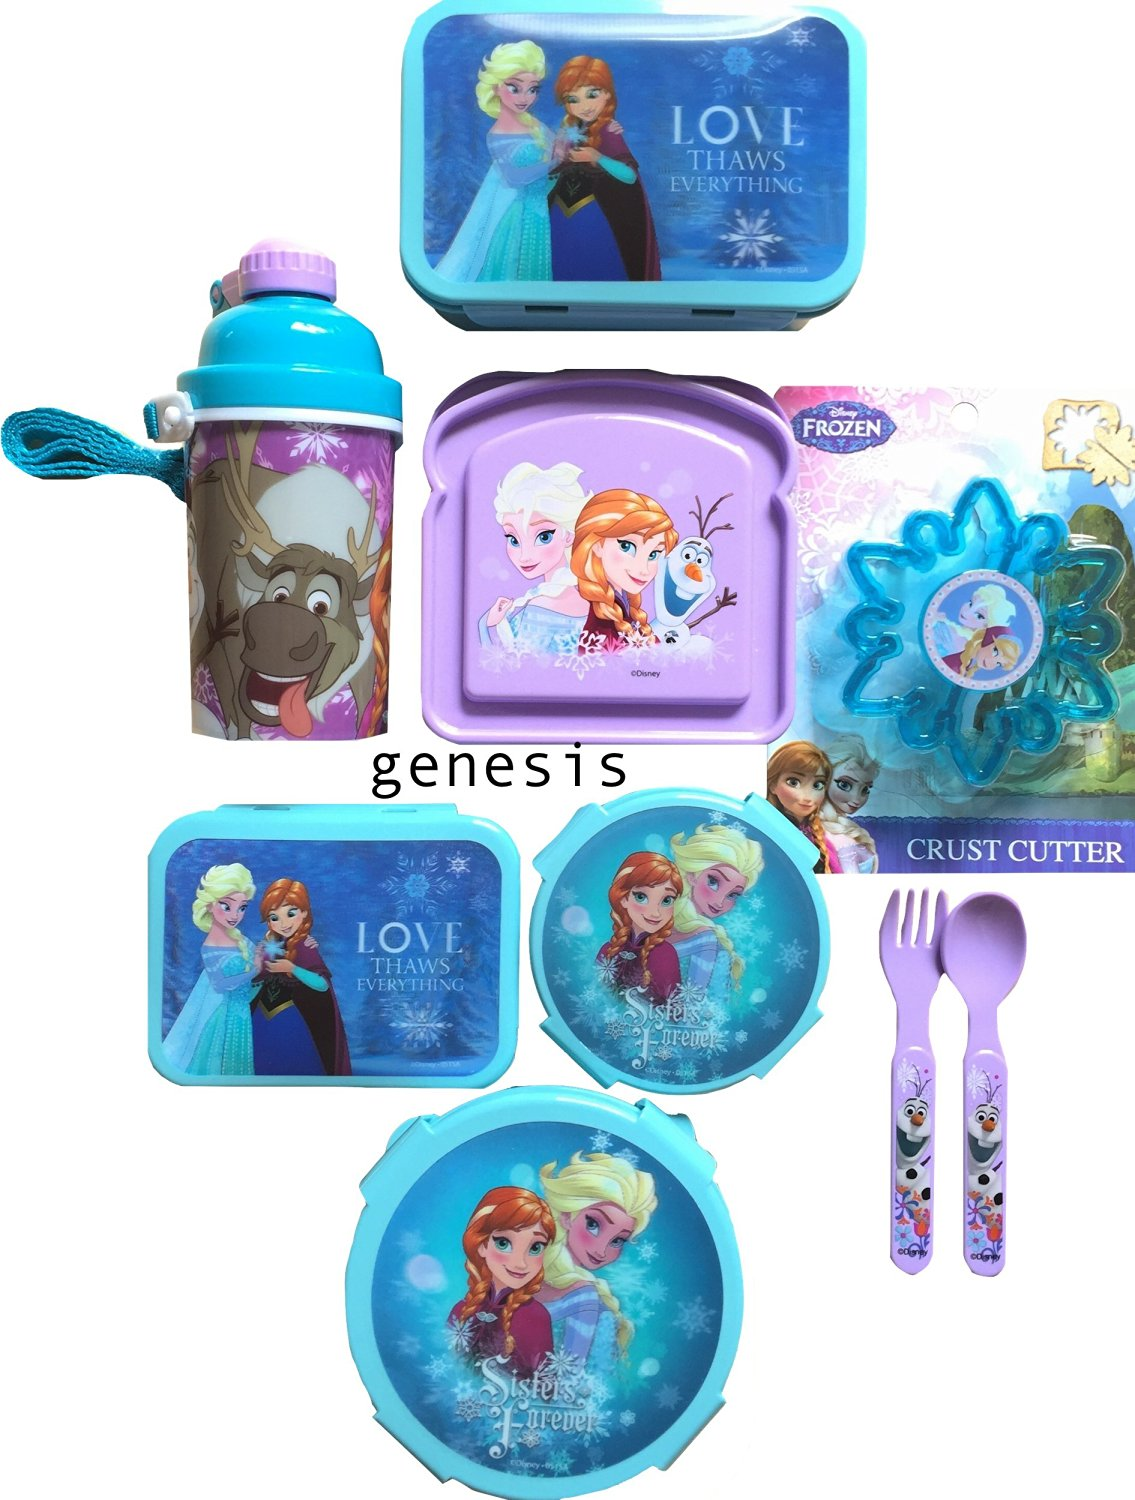 Disney Frozen 9Pc Children's Lunch Gift Set With Snack & Food Storages, Bottle, Crust Cutter & Utensils